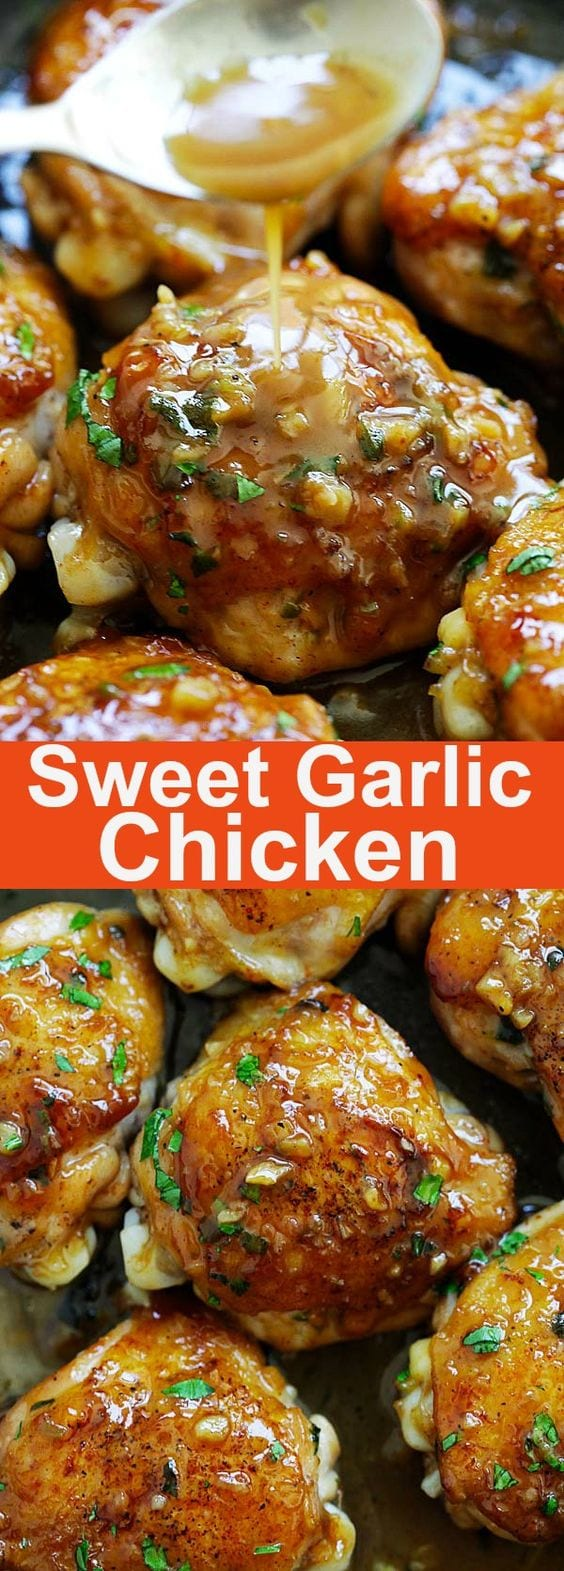 Sweet Garlic Chicken - best garlic chicken recipe ever, sweetened with brown sugar. Made in skillet and takes 20 minutes from prep to dinner table. This is chicken at its best | rasamalaysia.com